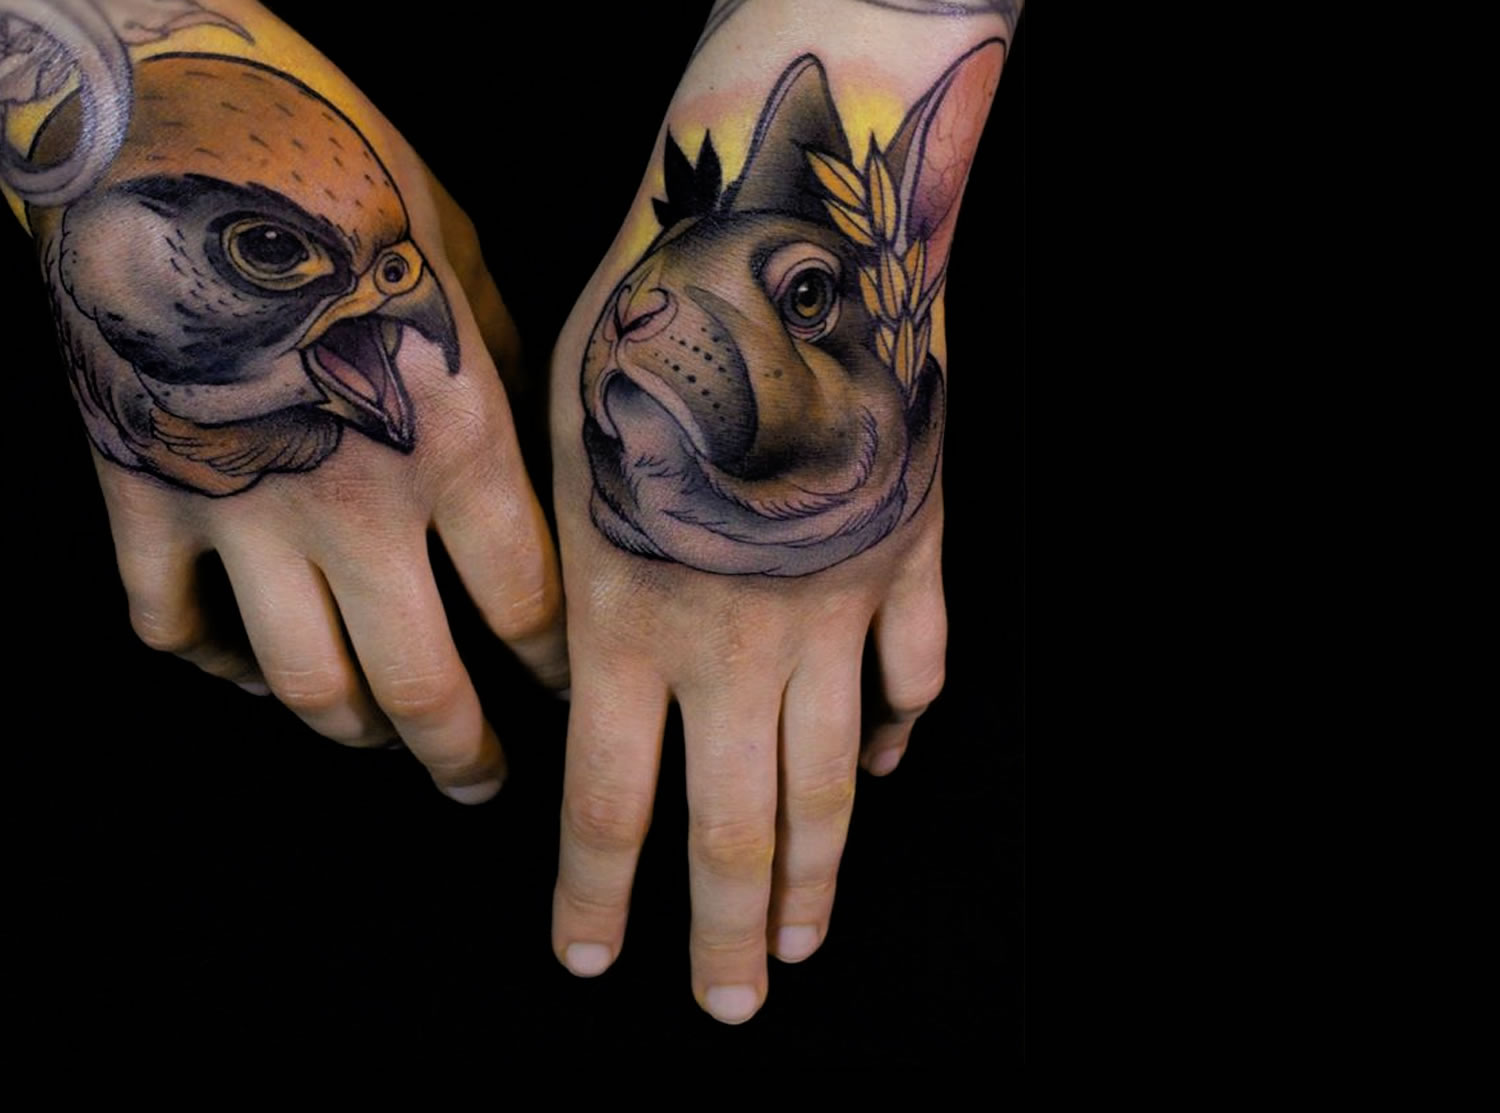 hawk and rabbit hand tattoos by Daniel Gensch